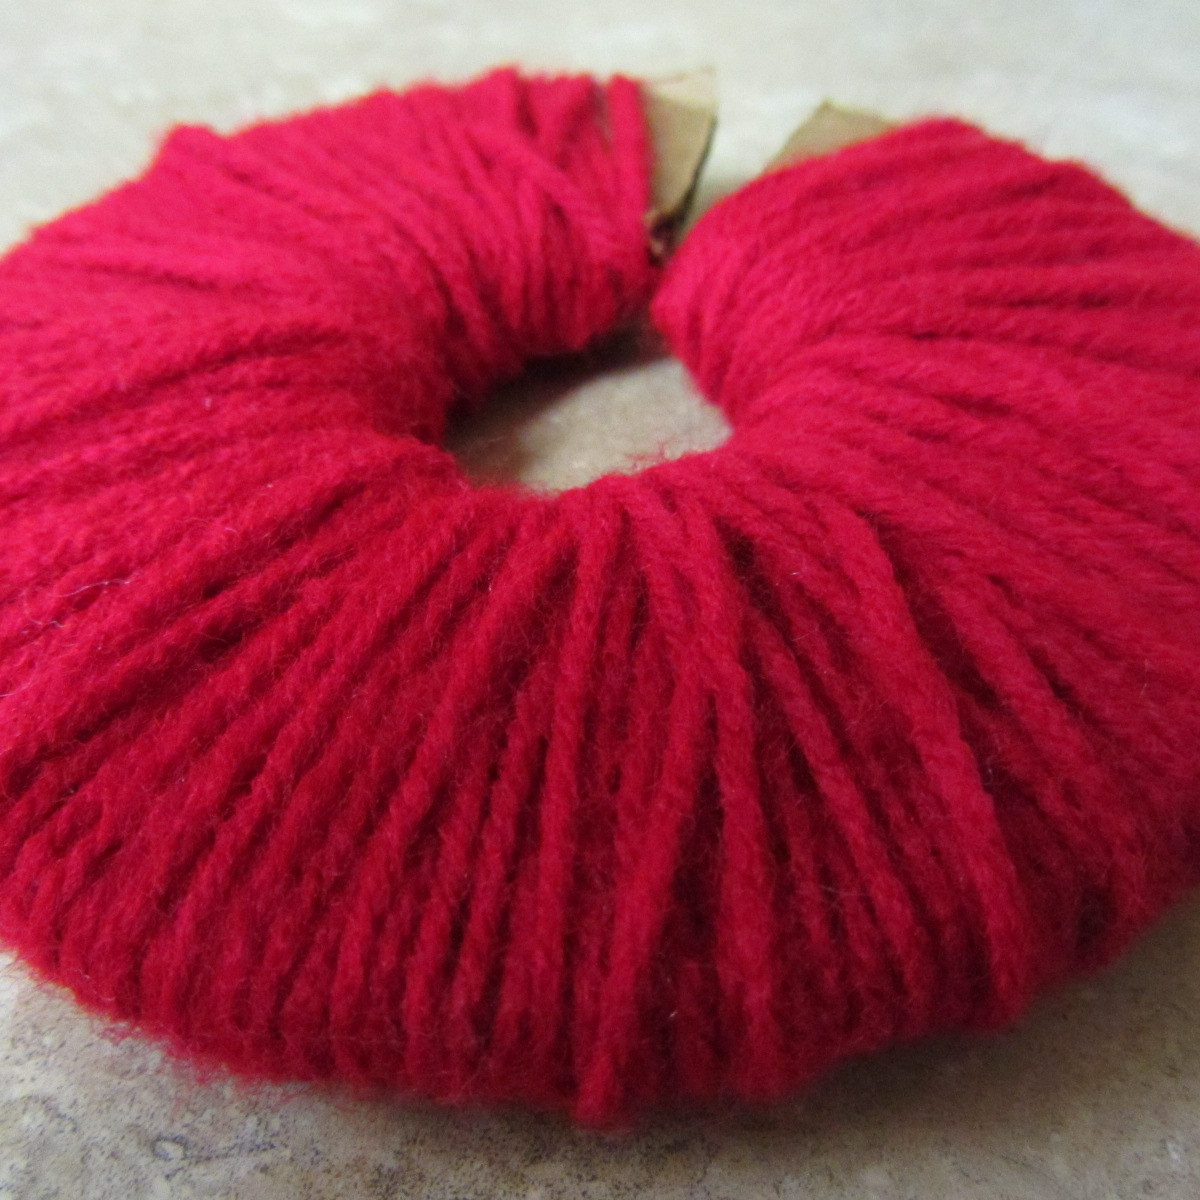 Unique My Heart is Always Home Yarn Pom Poms Yarn Pom Pom Maker Of New 40 Images Yarn Pom Pom Maker